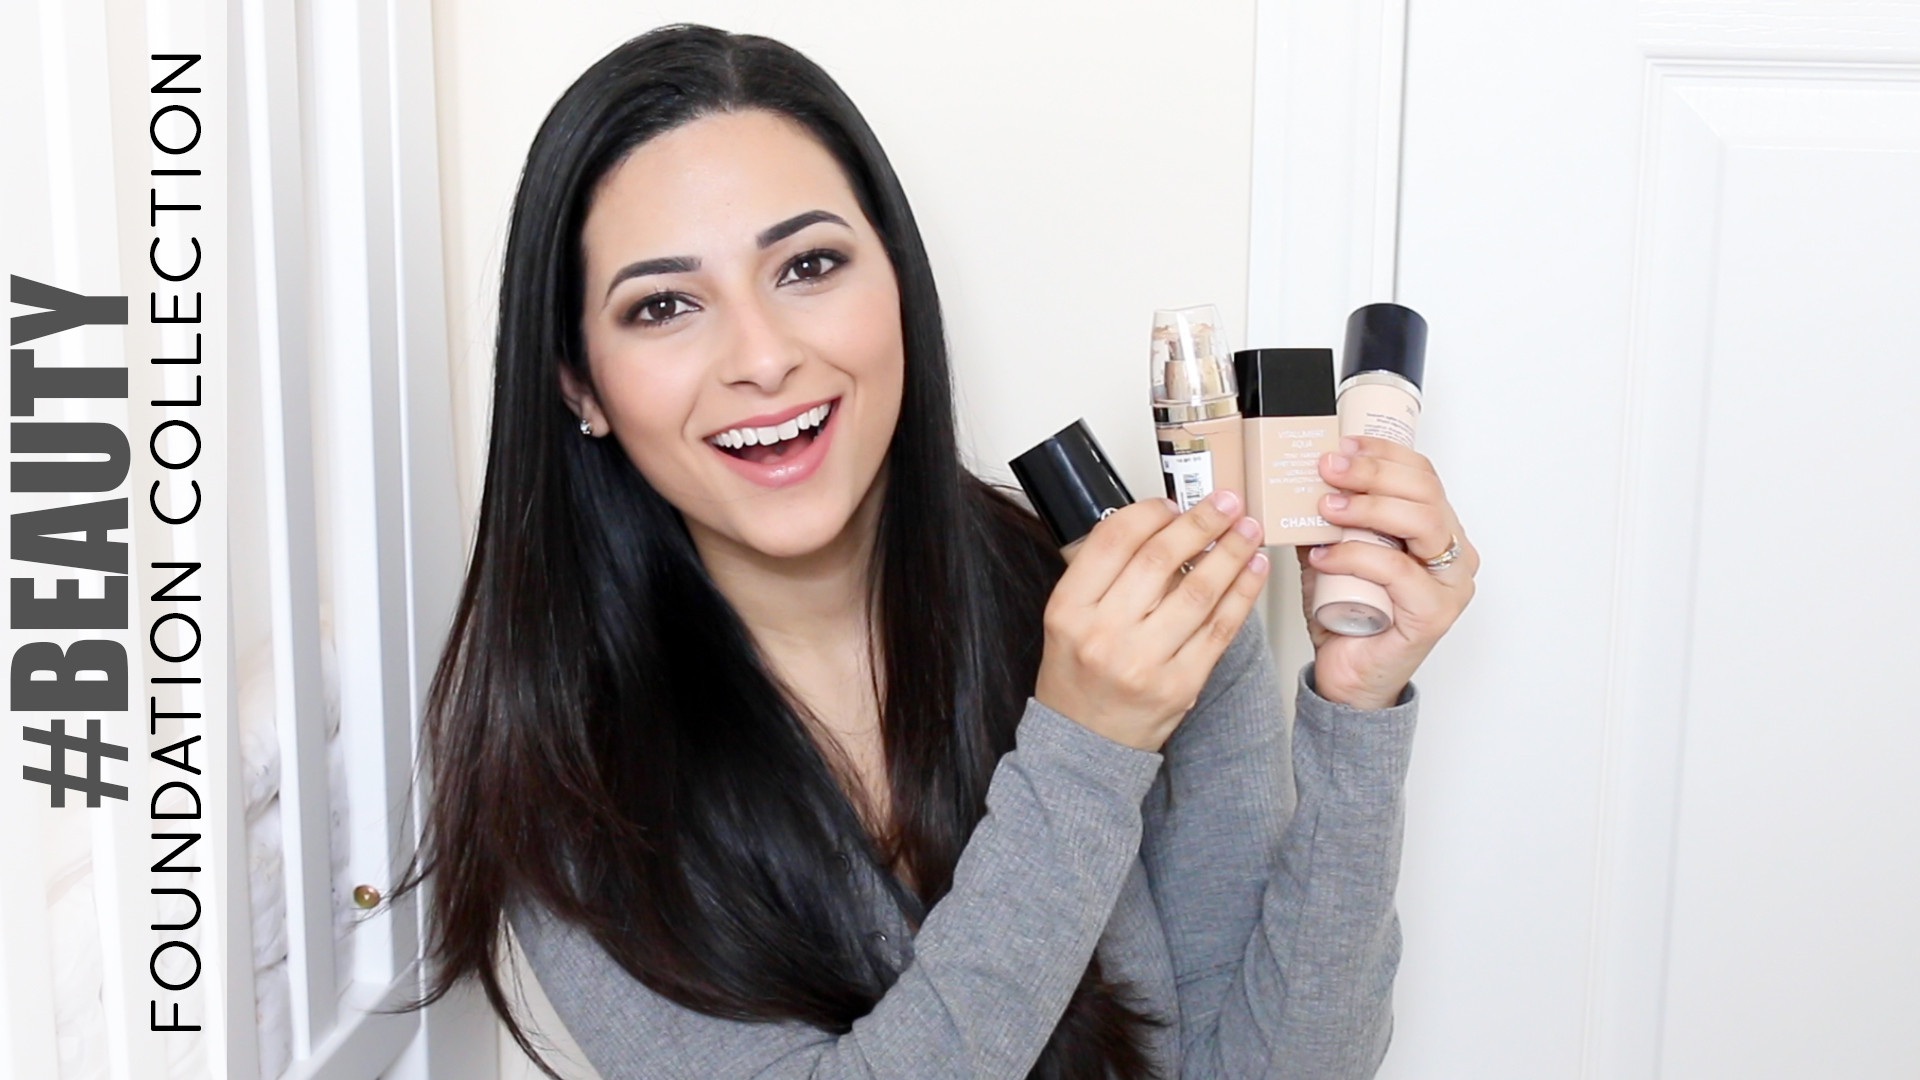 Foundation Collection 2016 Dry Skin Video Reviews - www.ysislorenna.com